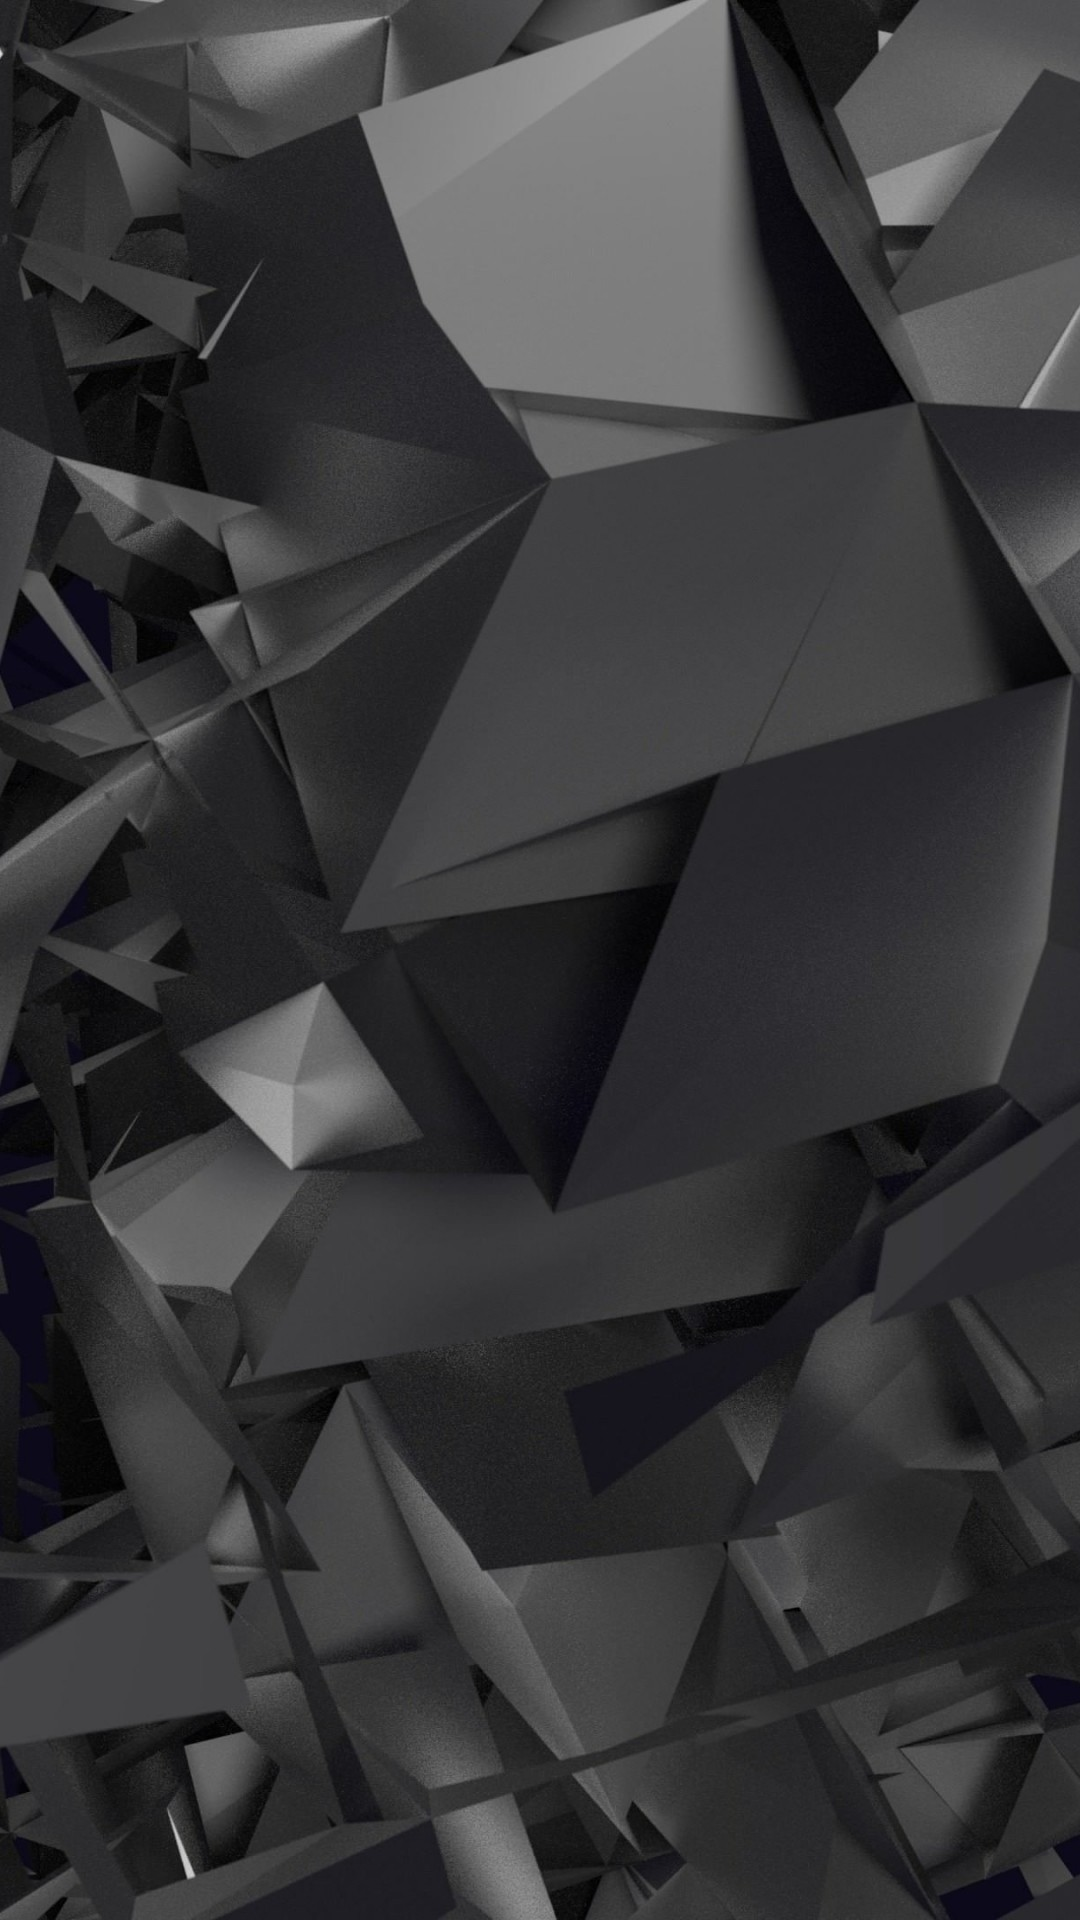 3D Geometry Wallpaper for SAMSUNG Galaxy S4